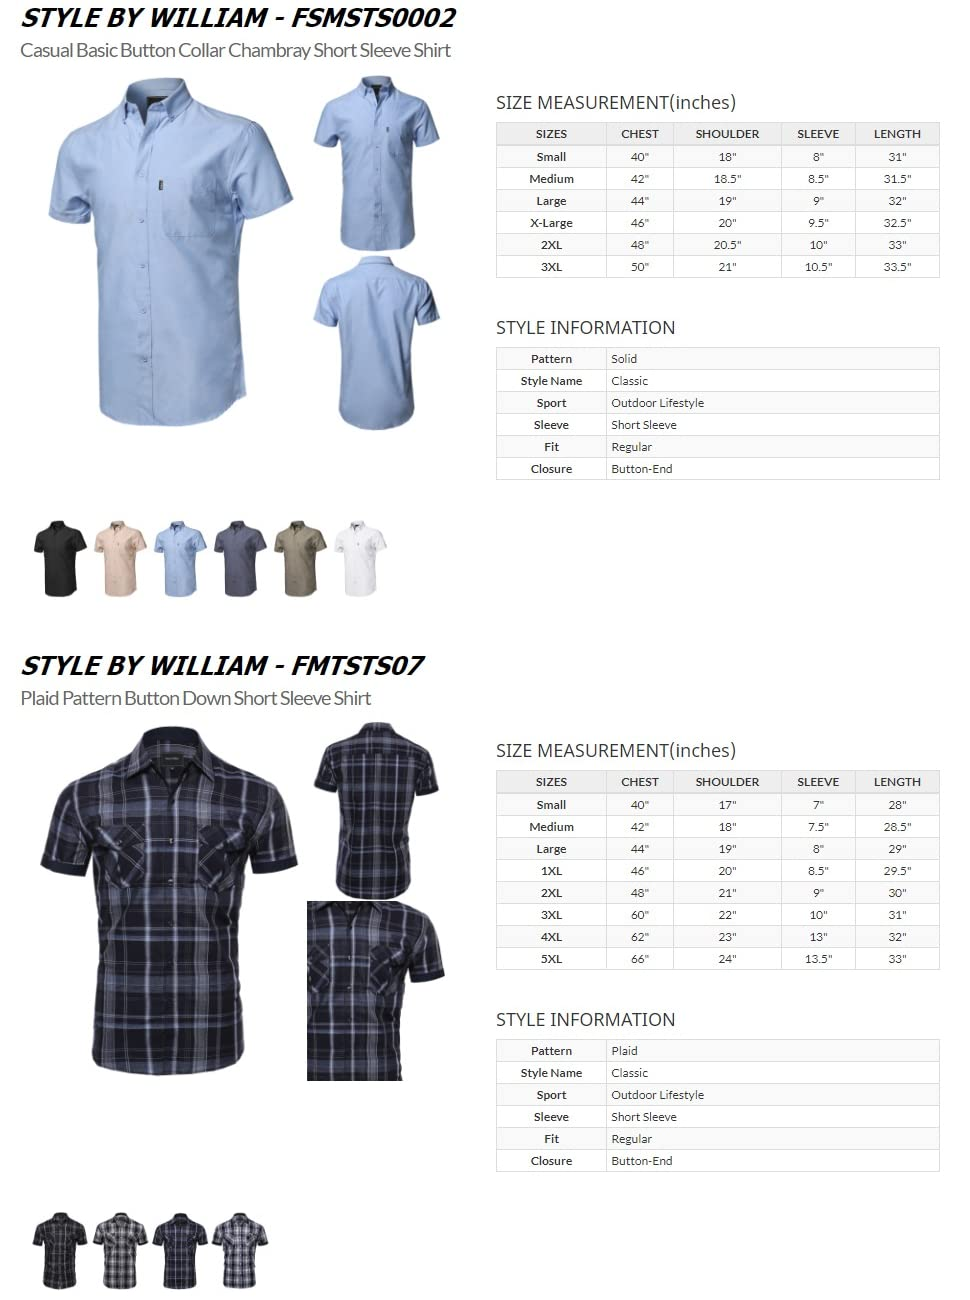 Style By William Button Down Short Sleeve Shirts